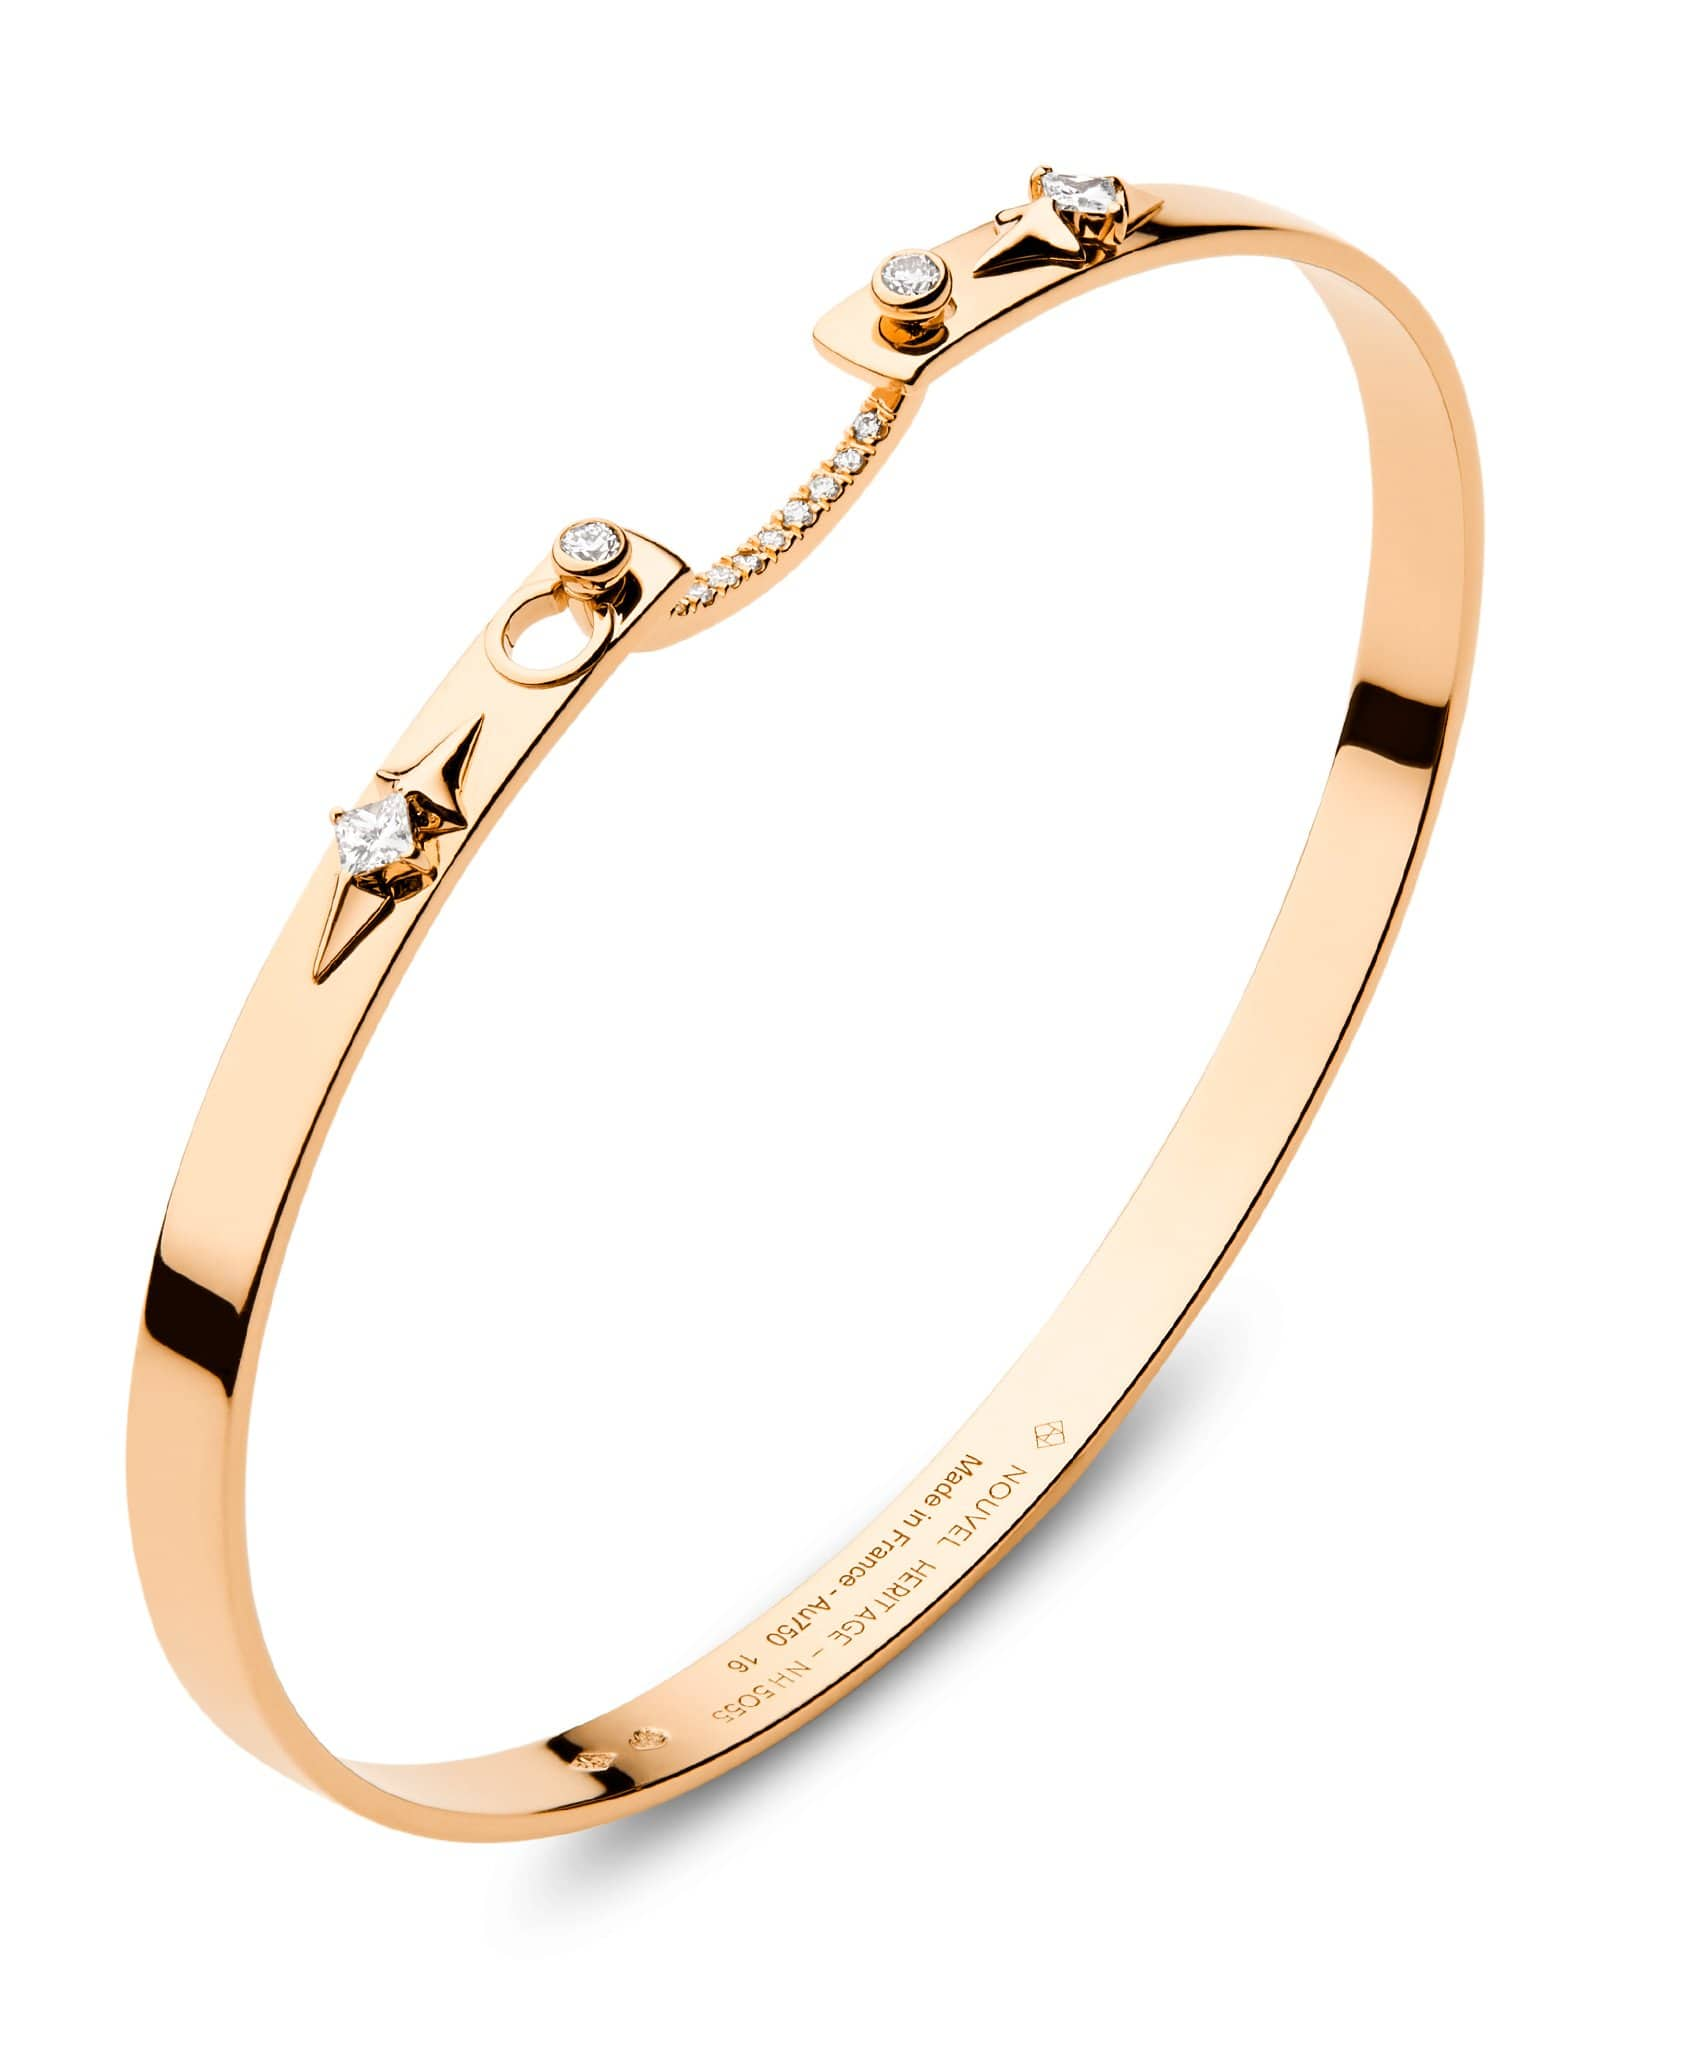 Rêverie Mood Bangle: Discover Luxury Fine Jewelry | Nouvel Heritage || Rose Gold